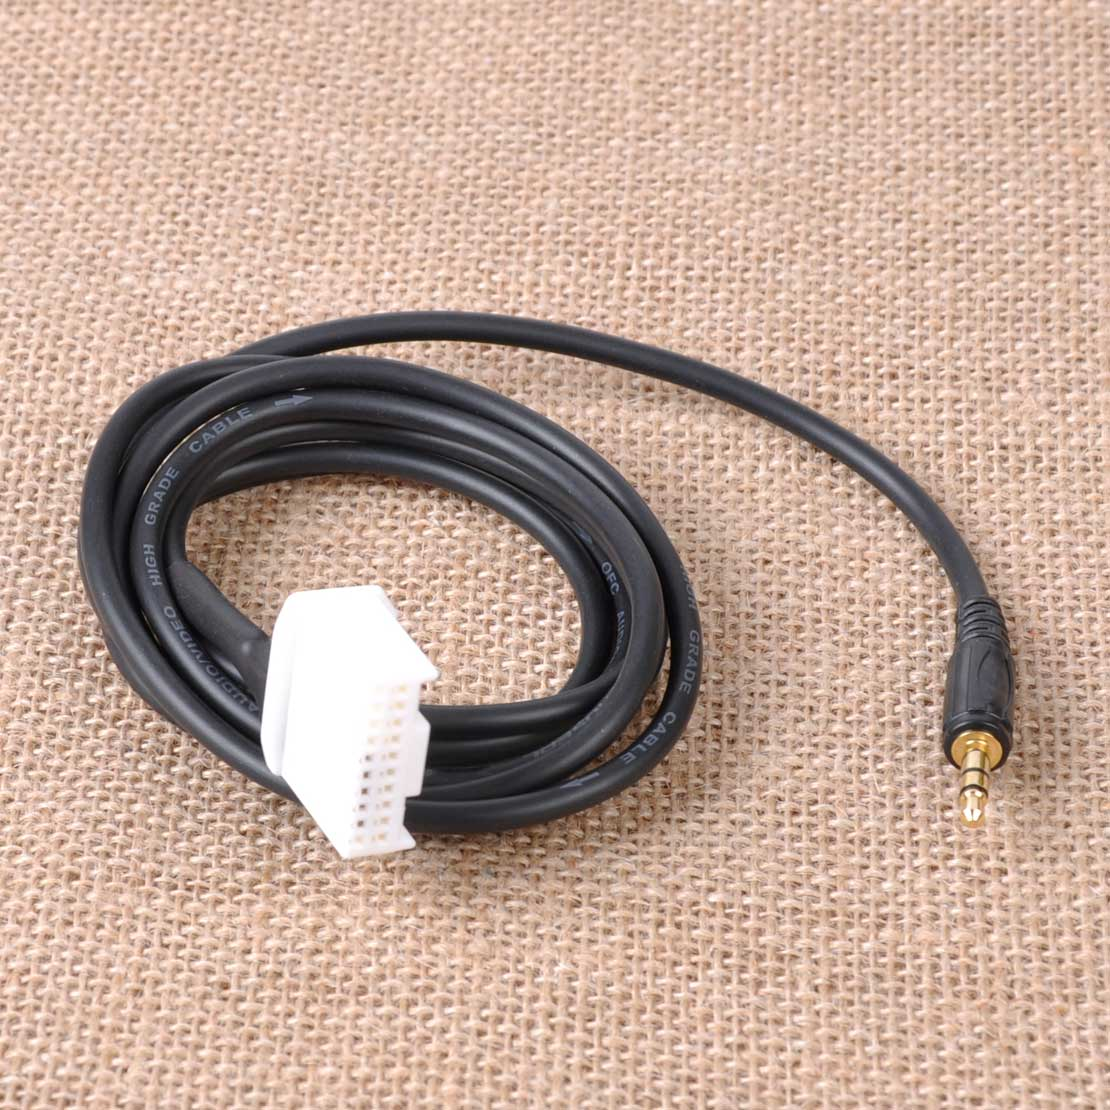 AUX Audio Input Cord Cable MP3 3.5mm Phone Male To USB Port Adapter For Toyota